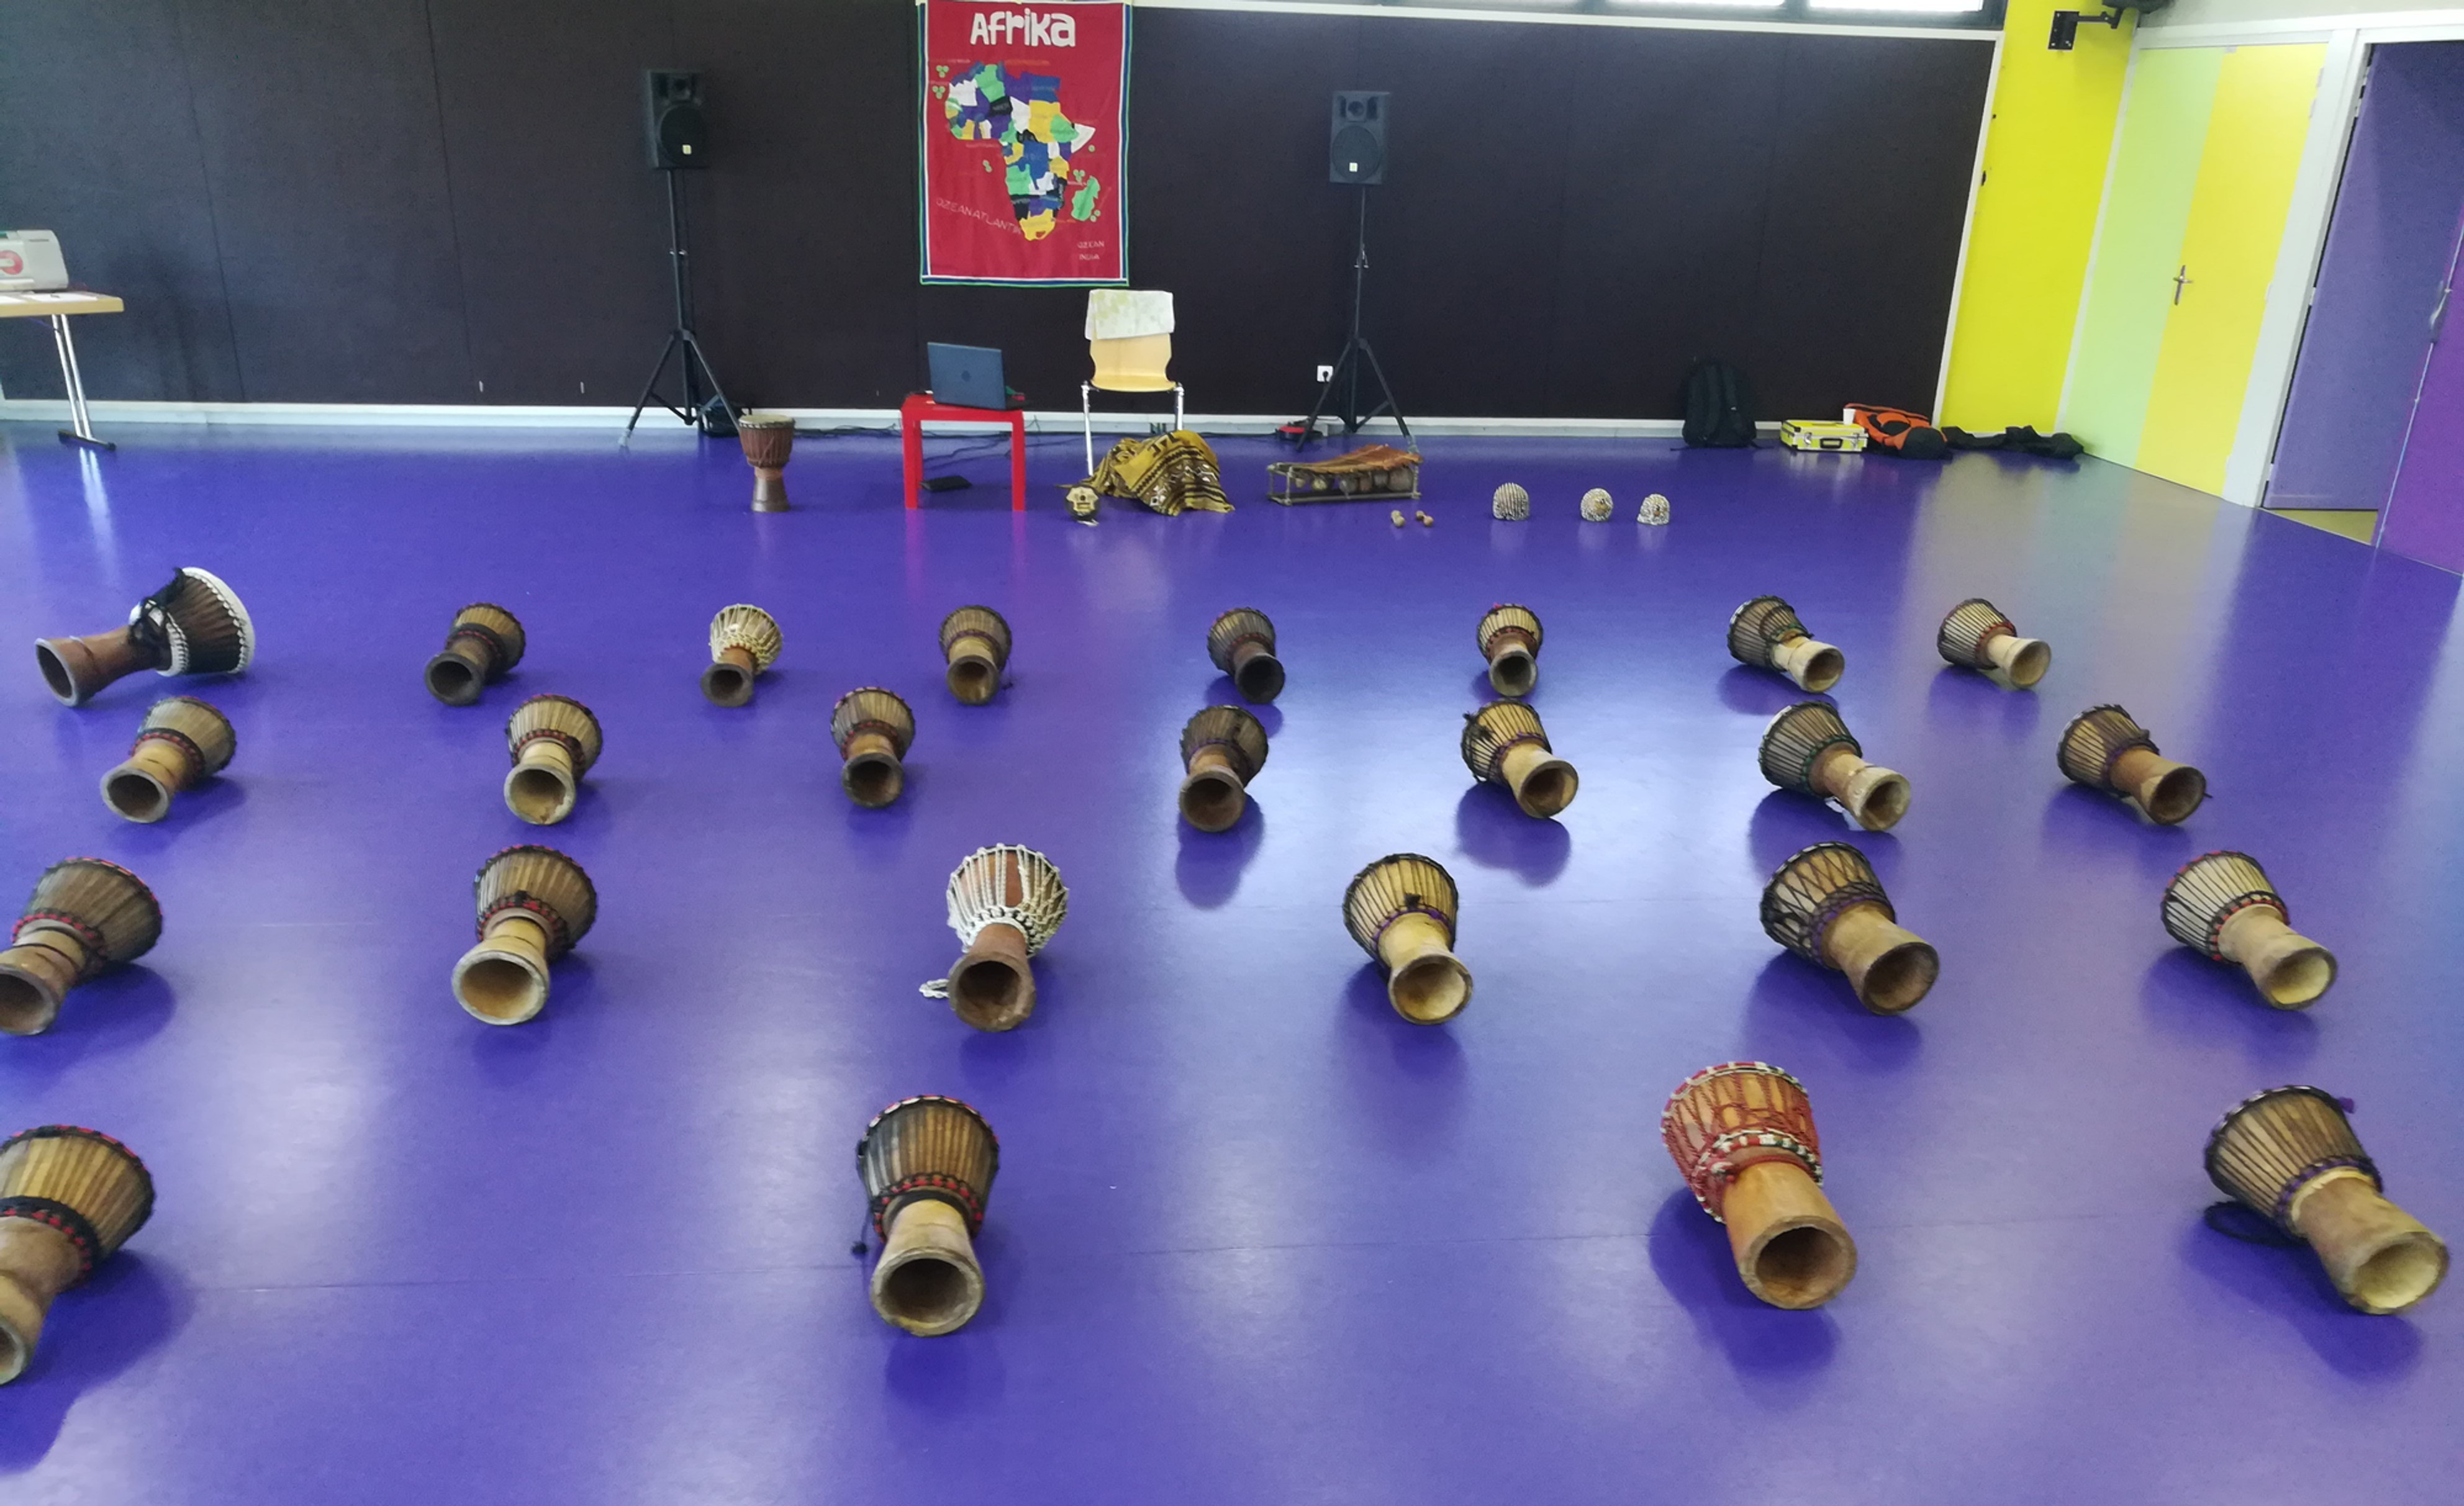 Initiation percussions 20 pers max